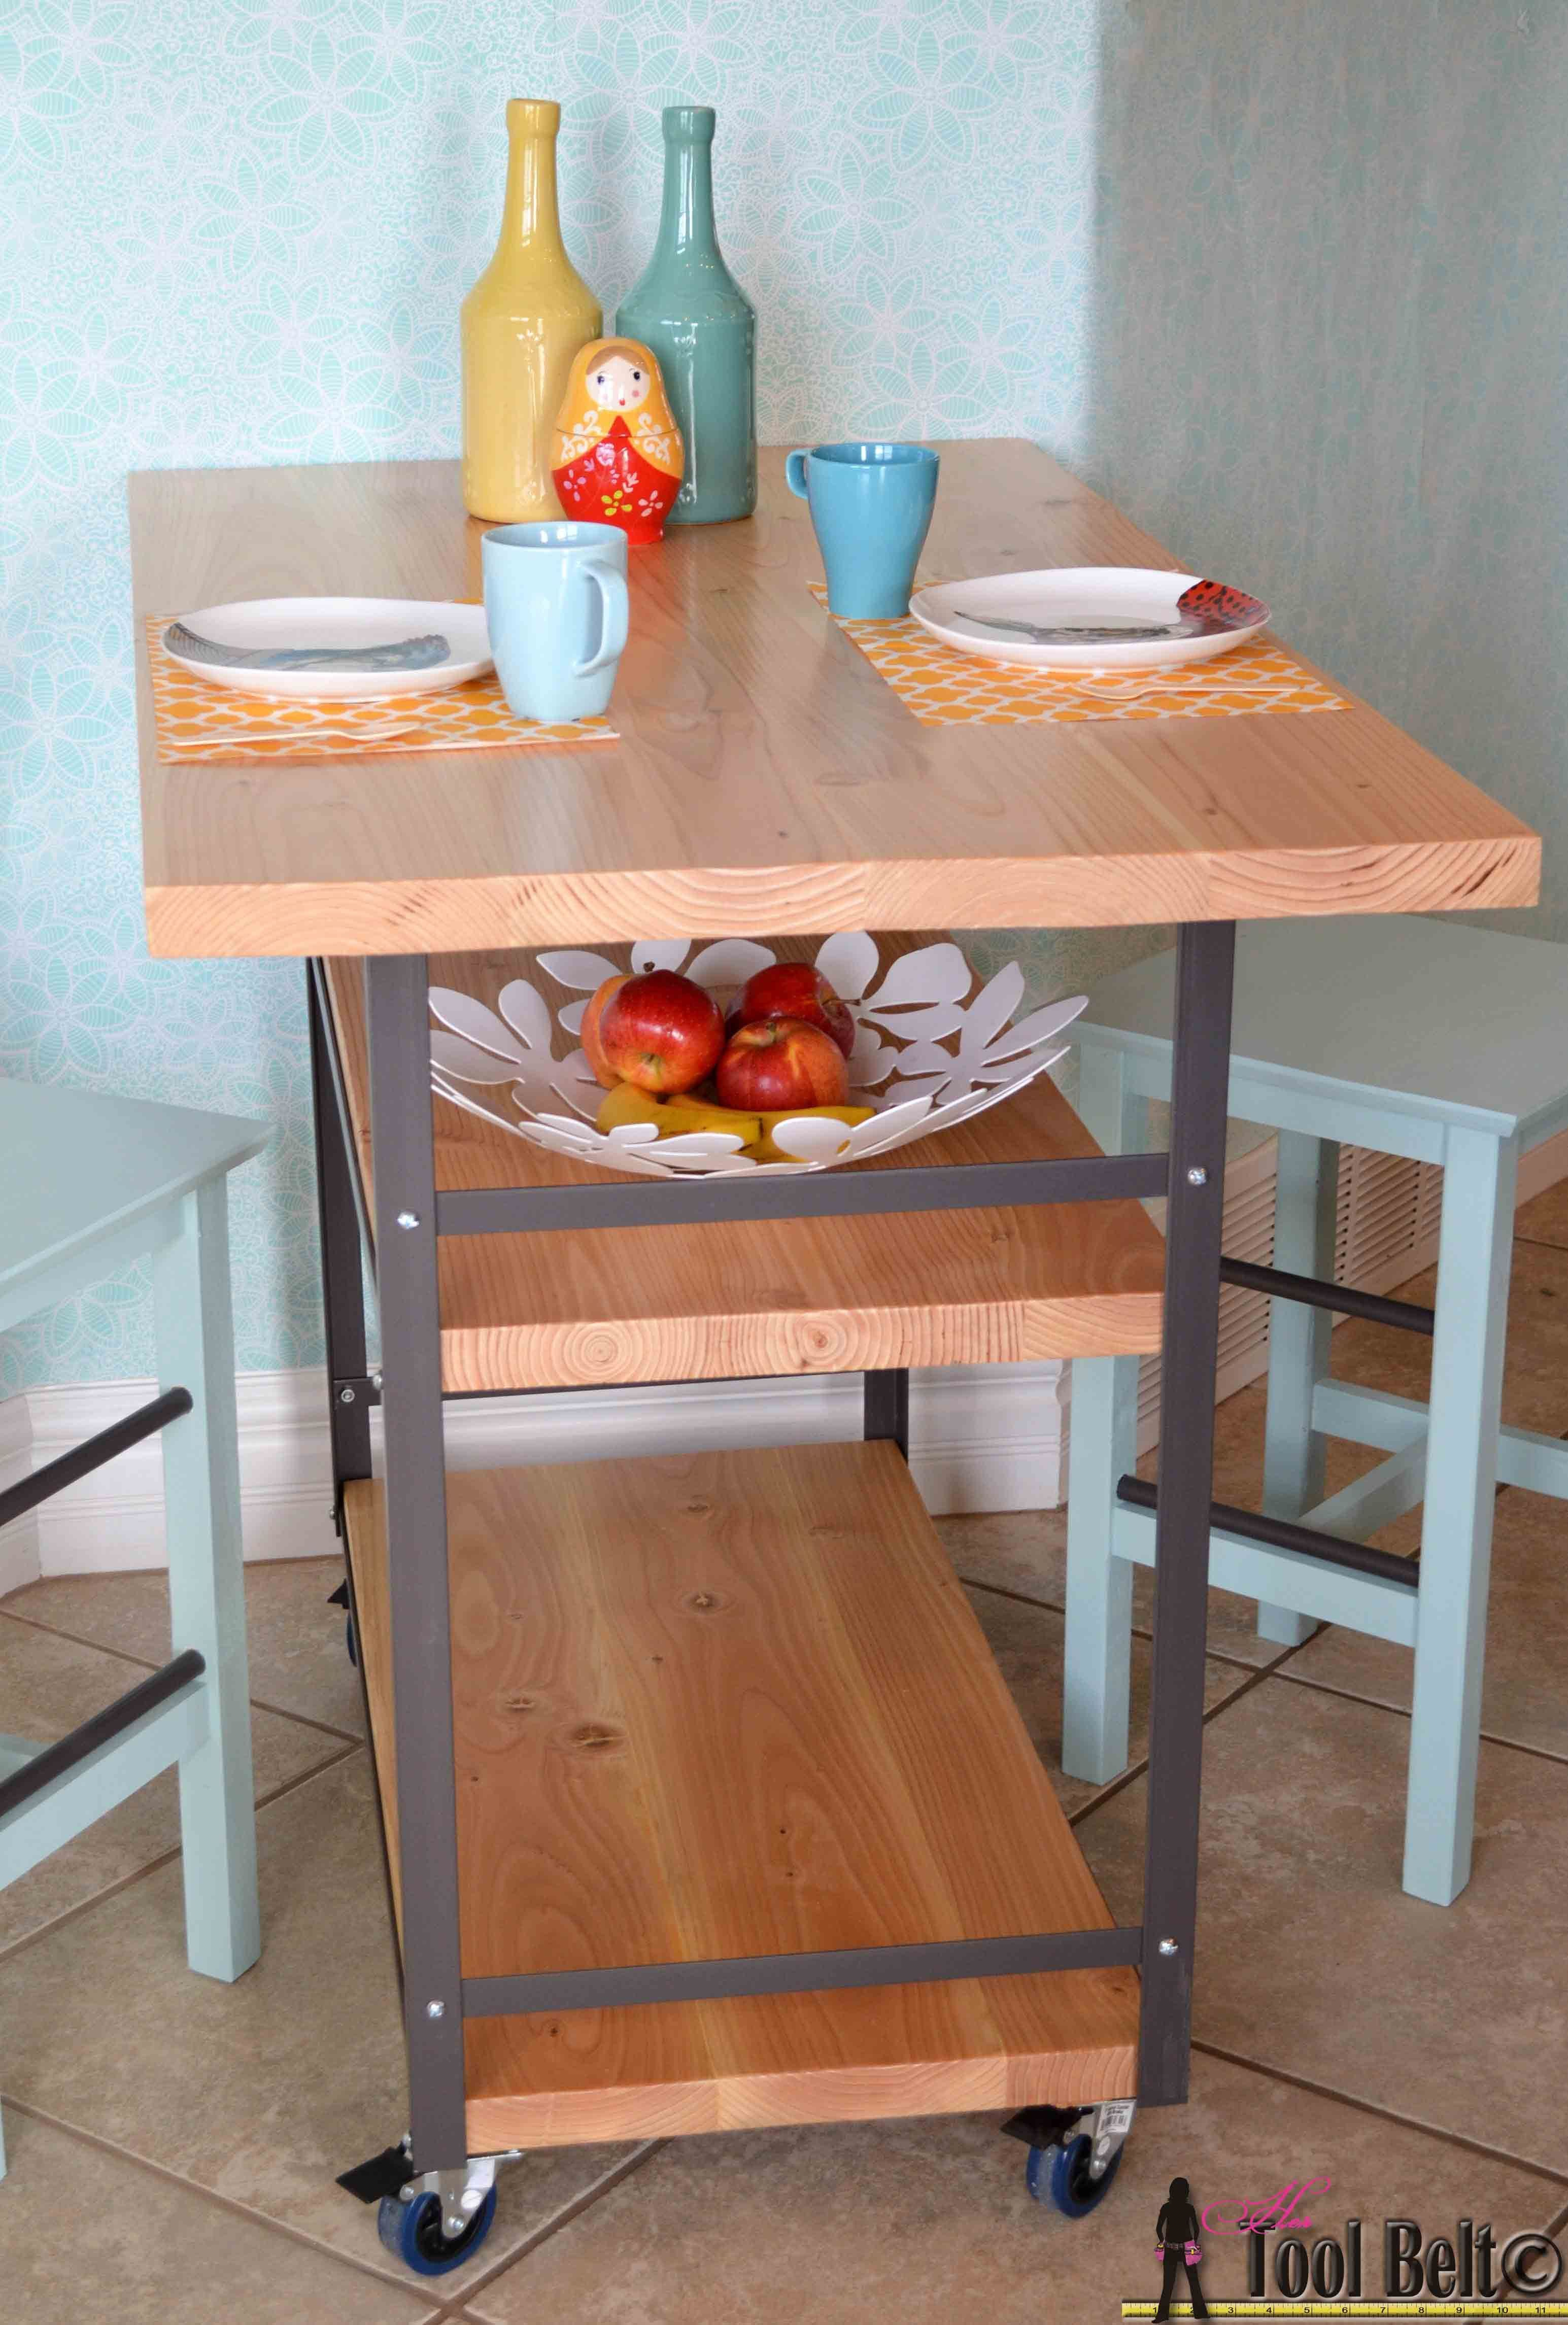 Rolling Island Counter Table With Images Rolling Island Counter Table Diy Kitchen